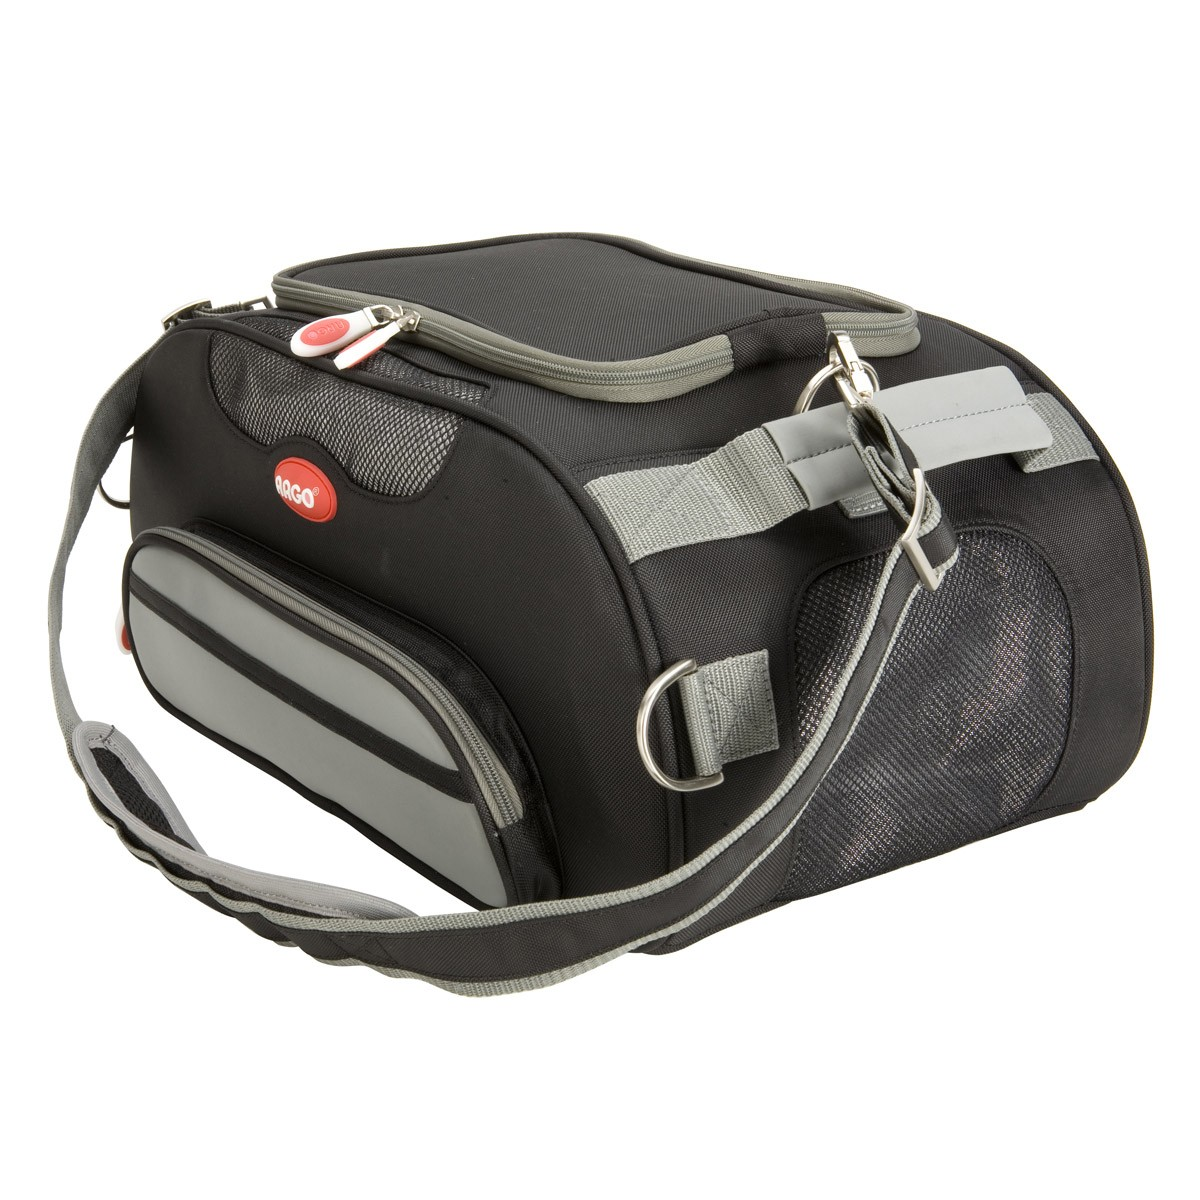 ab6c171289 ARGO Aero-Pet Airline Approved Carrier Black Small - 18.5 in · Zoom